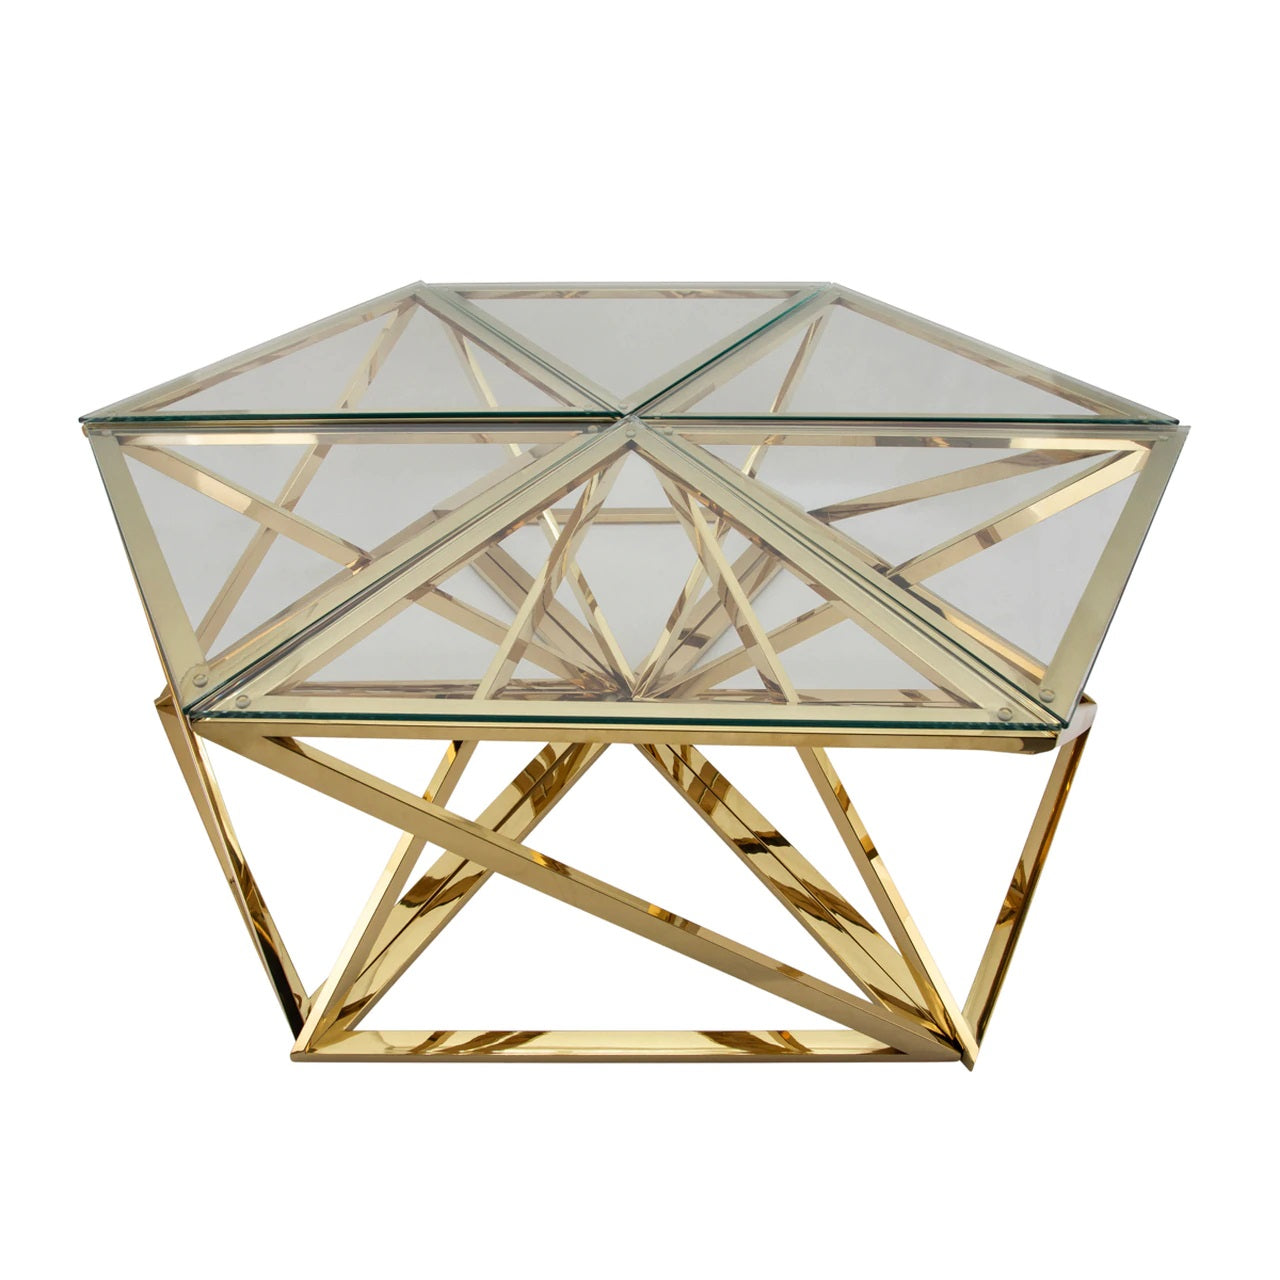 METAL HEXAGON COFFEE TABLE, GOLD 100% STAINLESS STEEL